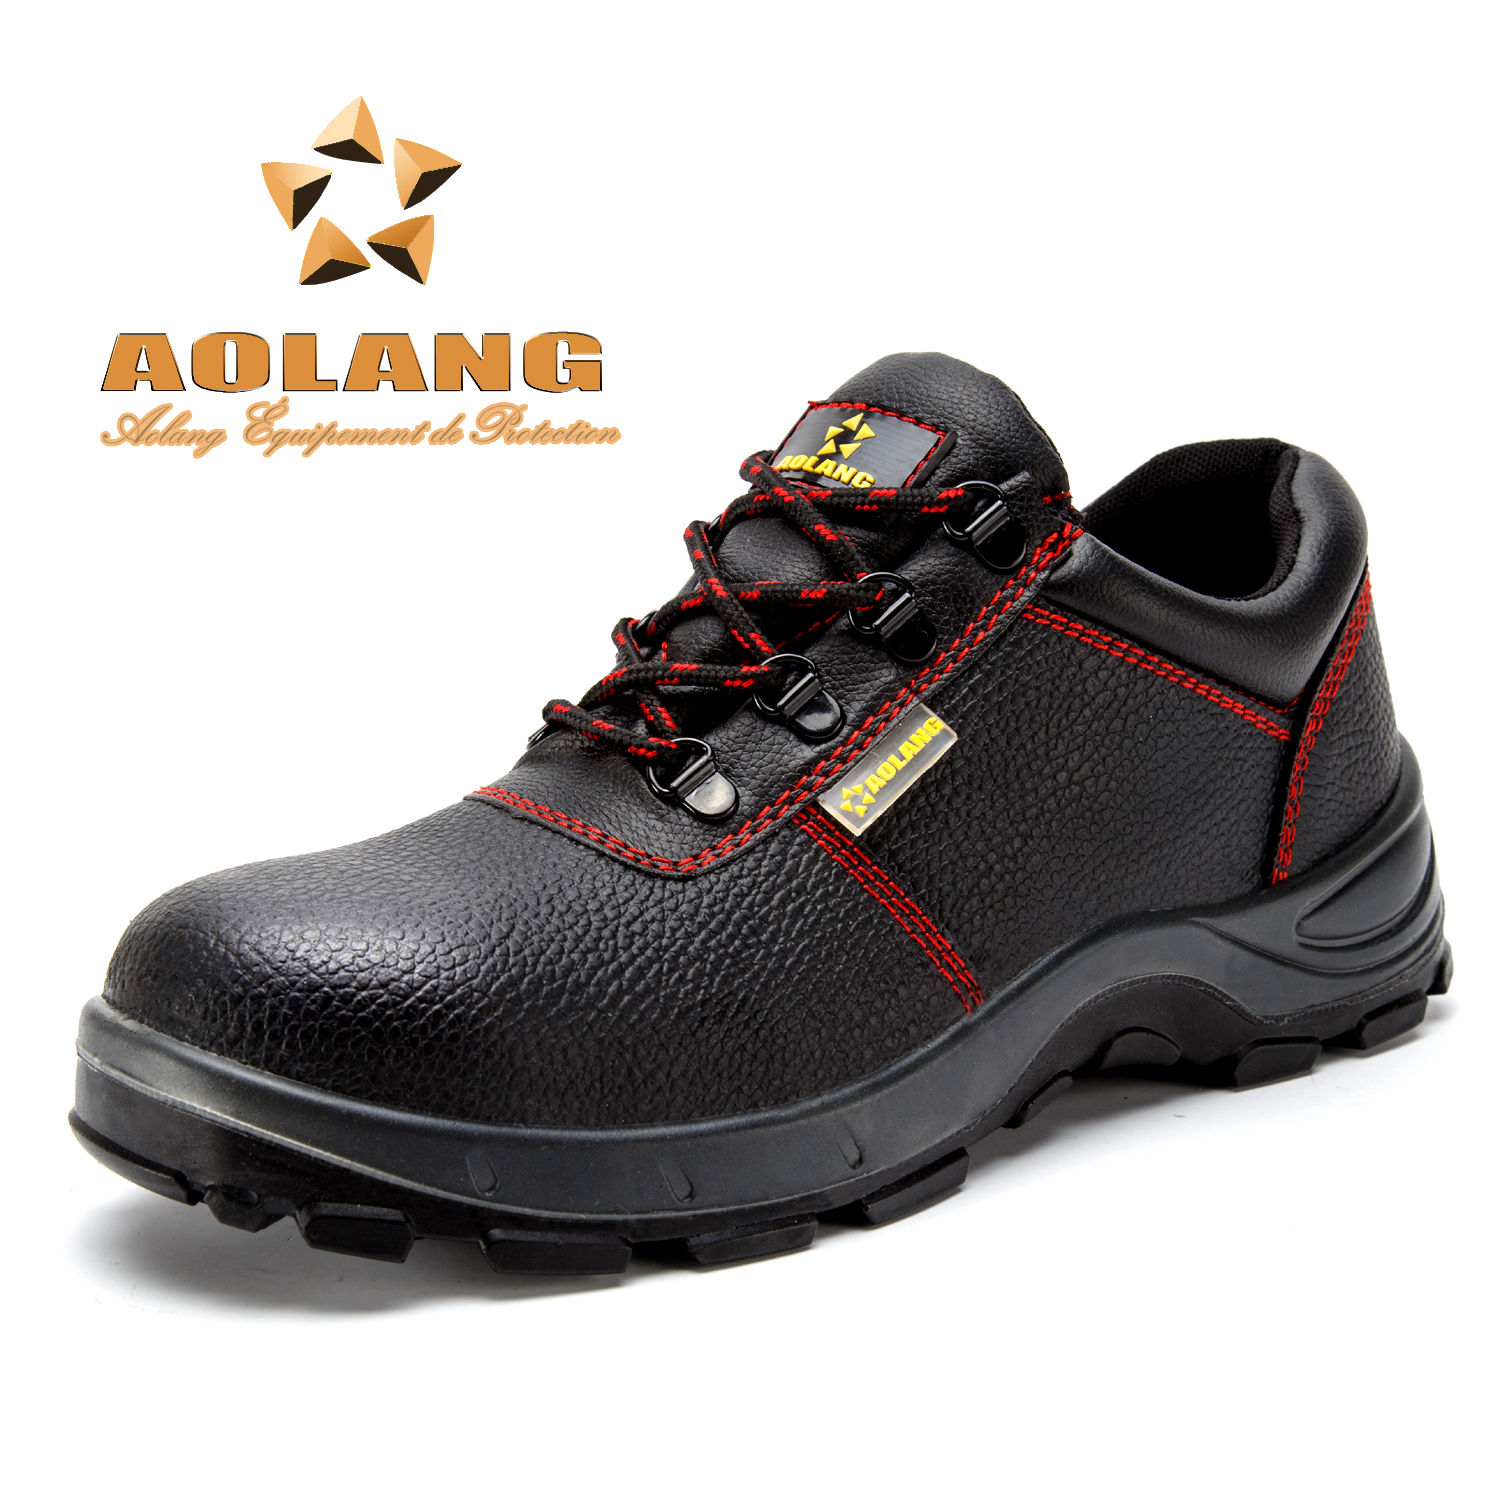 Free shipping labor baotou steel safety shoes men slip breathable waterproof pu bottom anti smashing stab wear and deodorant kitchen